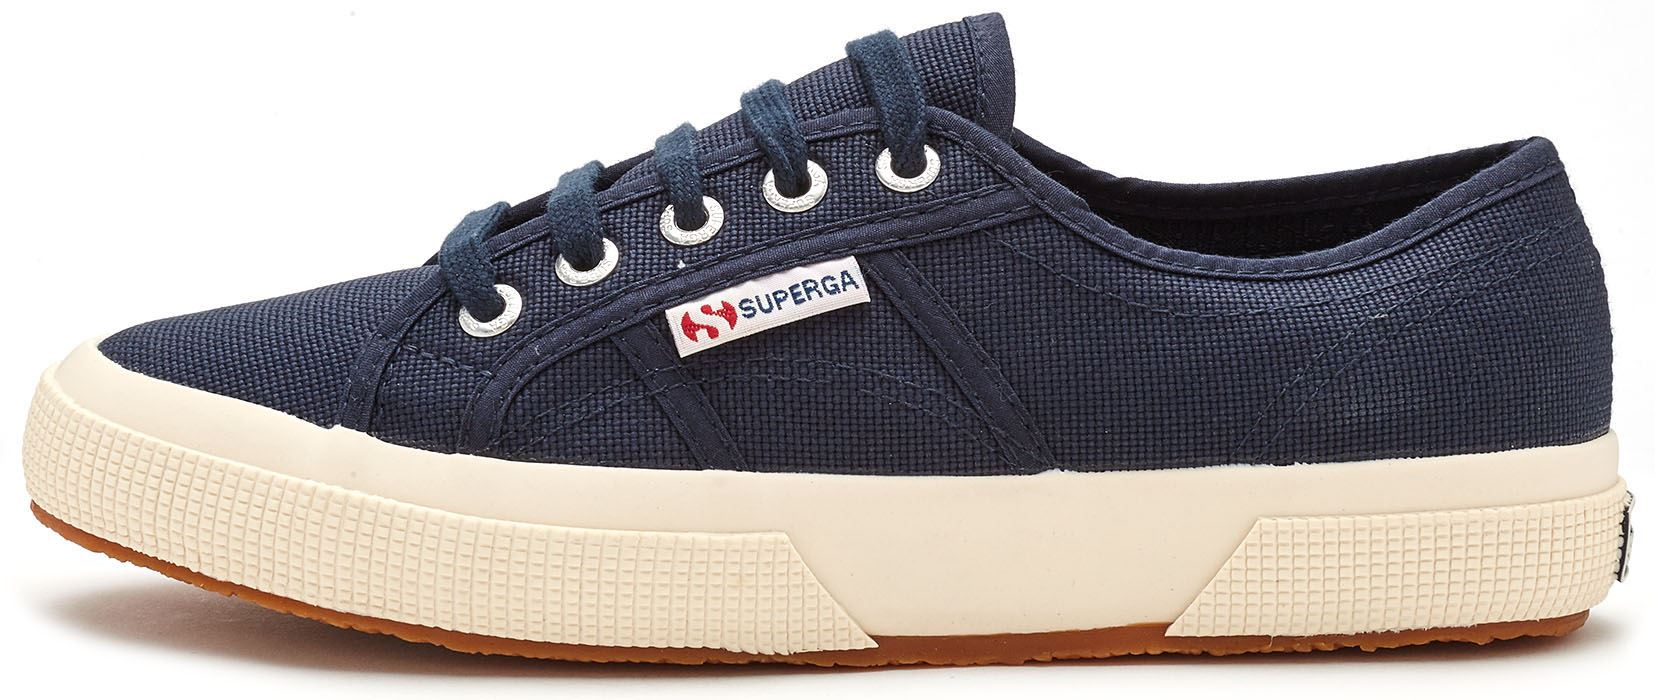 0bed5234799c8 Superga COTU 2750 Mens S000010 Navy 993 Trainers Shoes Size Uk11 ...